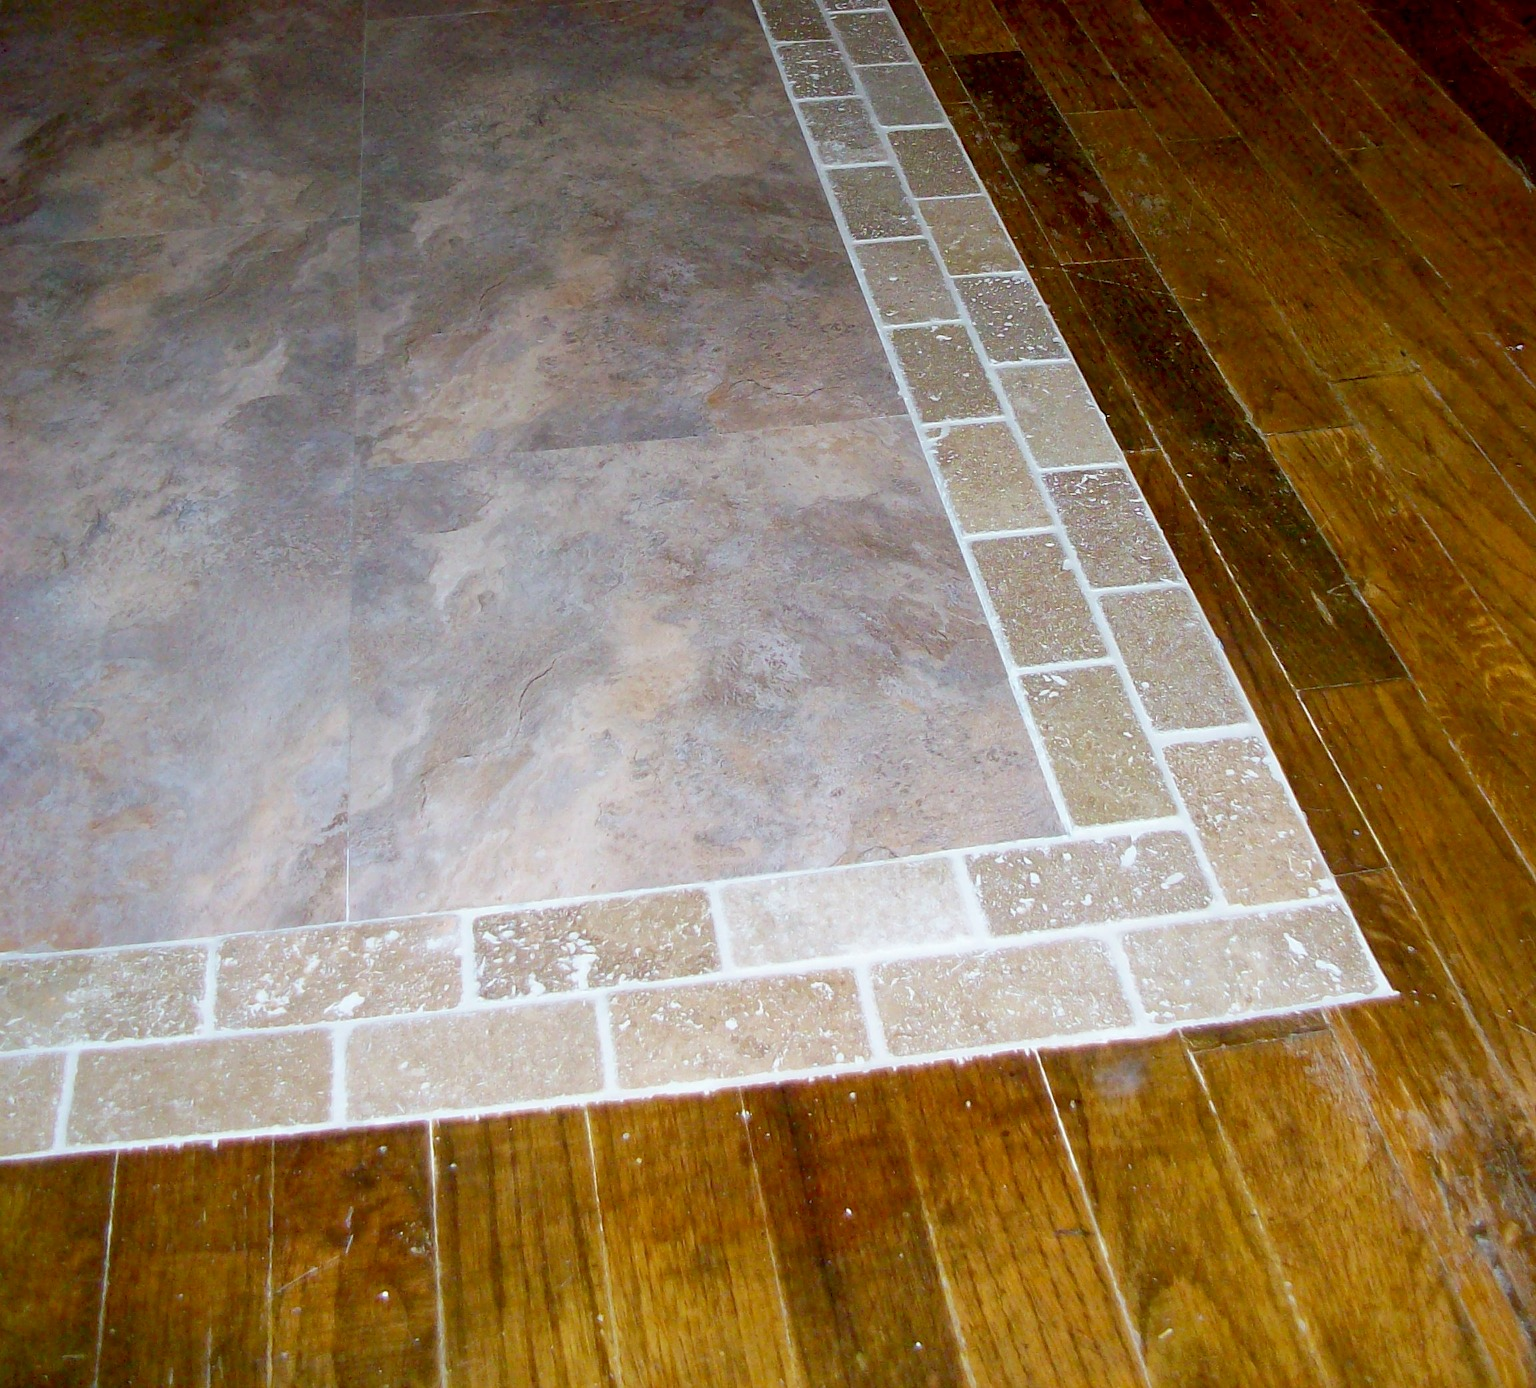 19 laminate floor transitions stairs laminate transitions laminate floor transitions stairs by homesteading wife wood floor to tile transition dailygadgetfo Choice Image